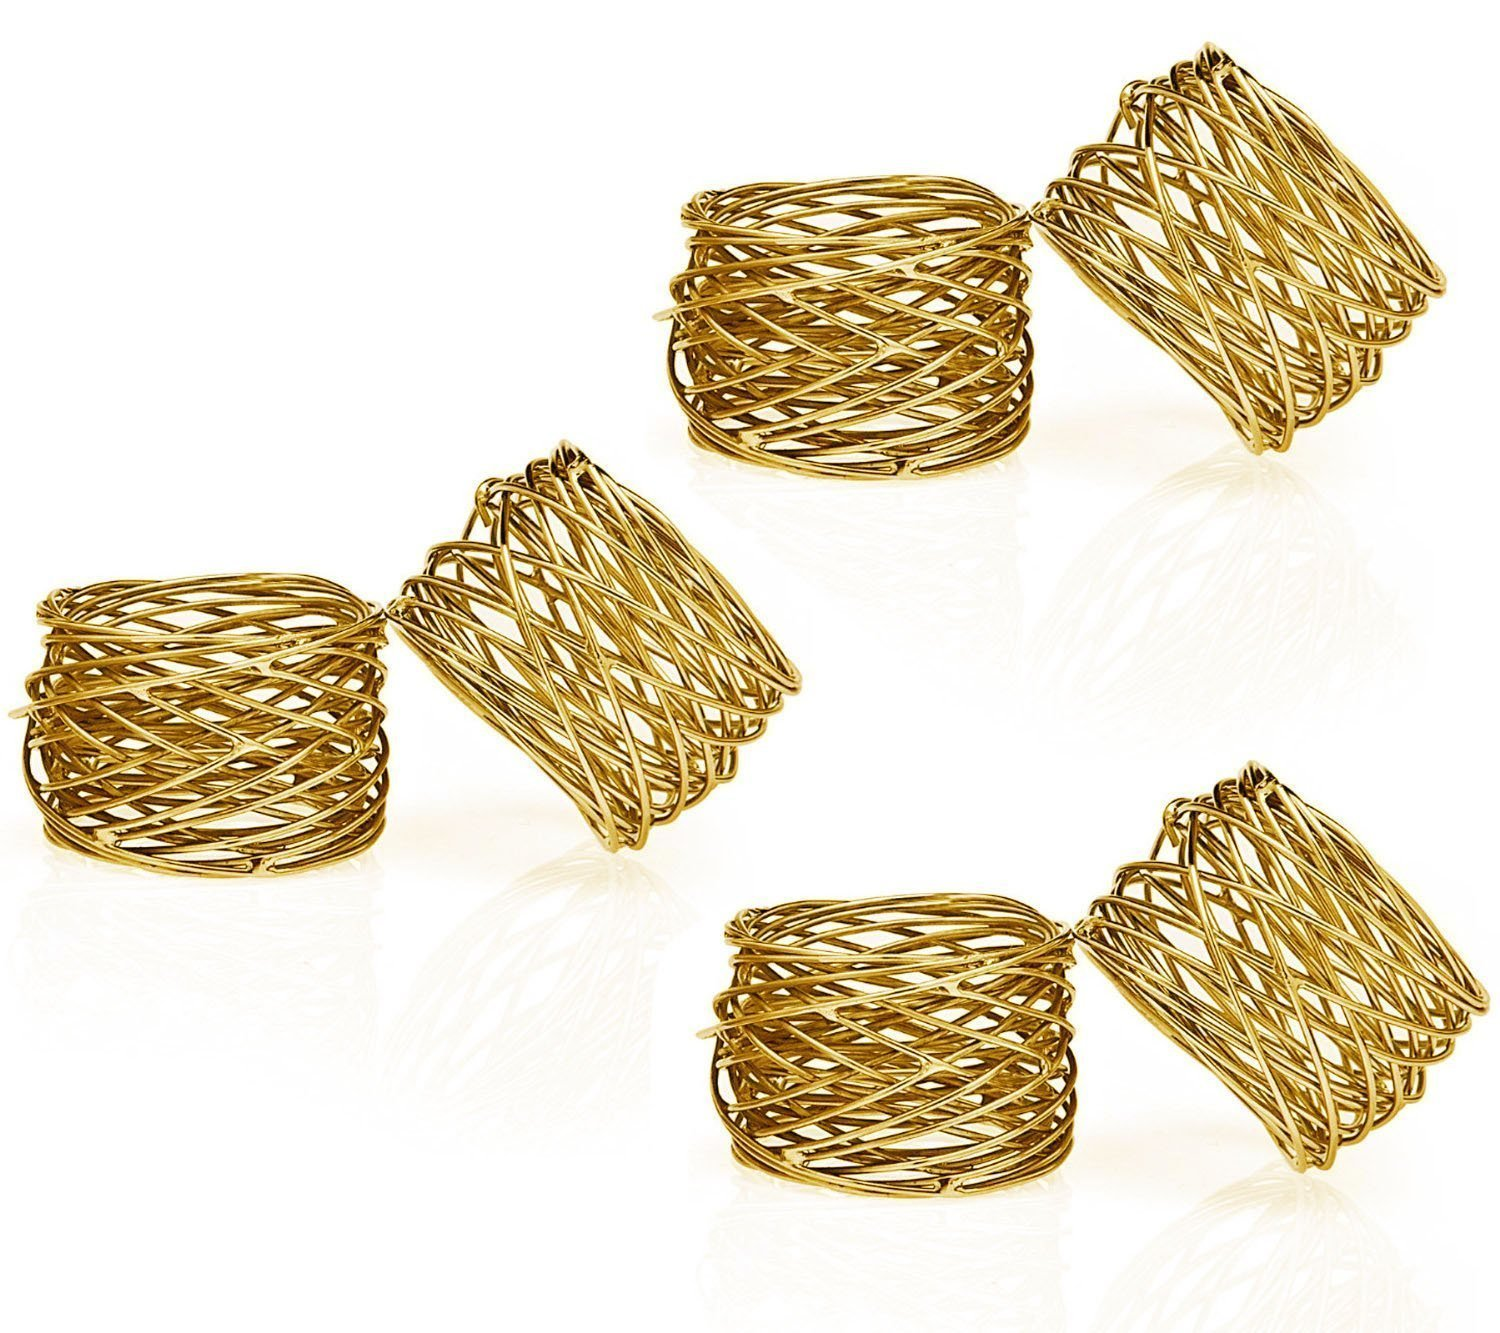 SKAVIJ Handmade Gold Napkin Rings Set of 4 Round Mesh Weddings Dinner Parties Every Day Use M-NR1